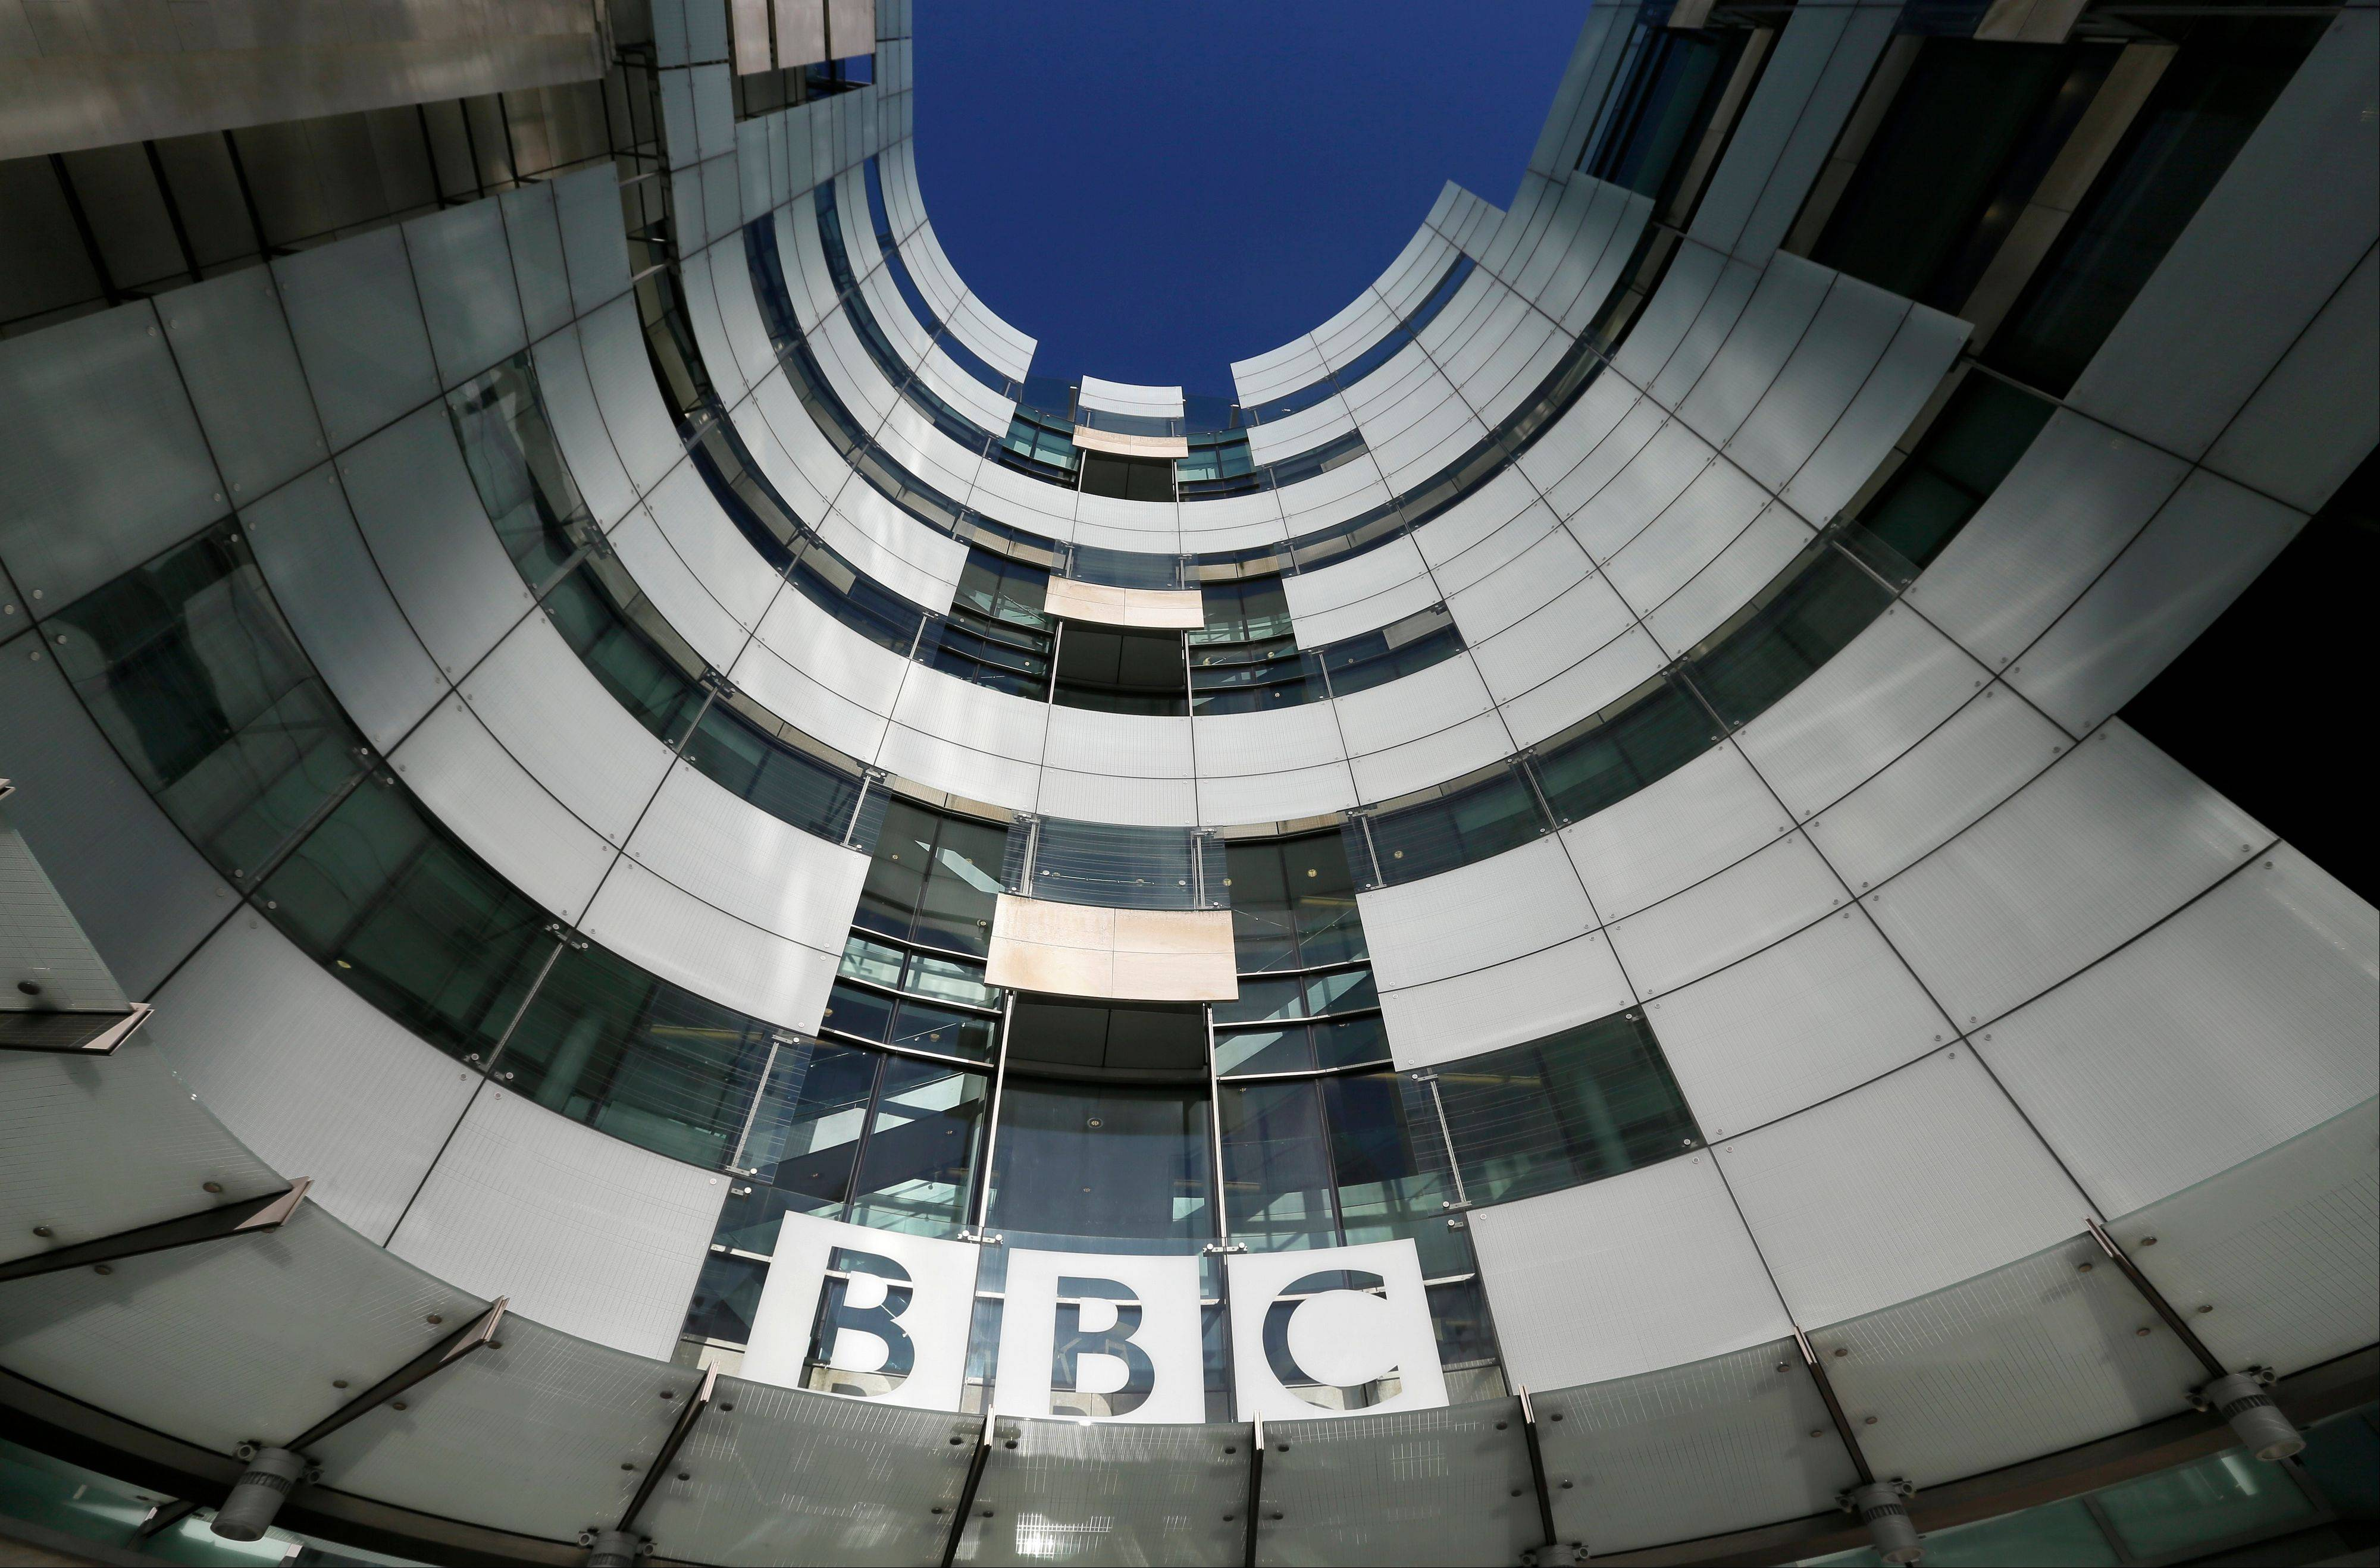 The head of the BBC�s governing body said Sunday the broadcaster needs a radical overhaul following the resignation of its chief executive in the wake of a scandal over a botched report on child sex-abuse allegations.